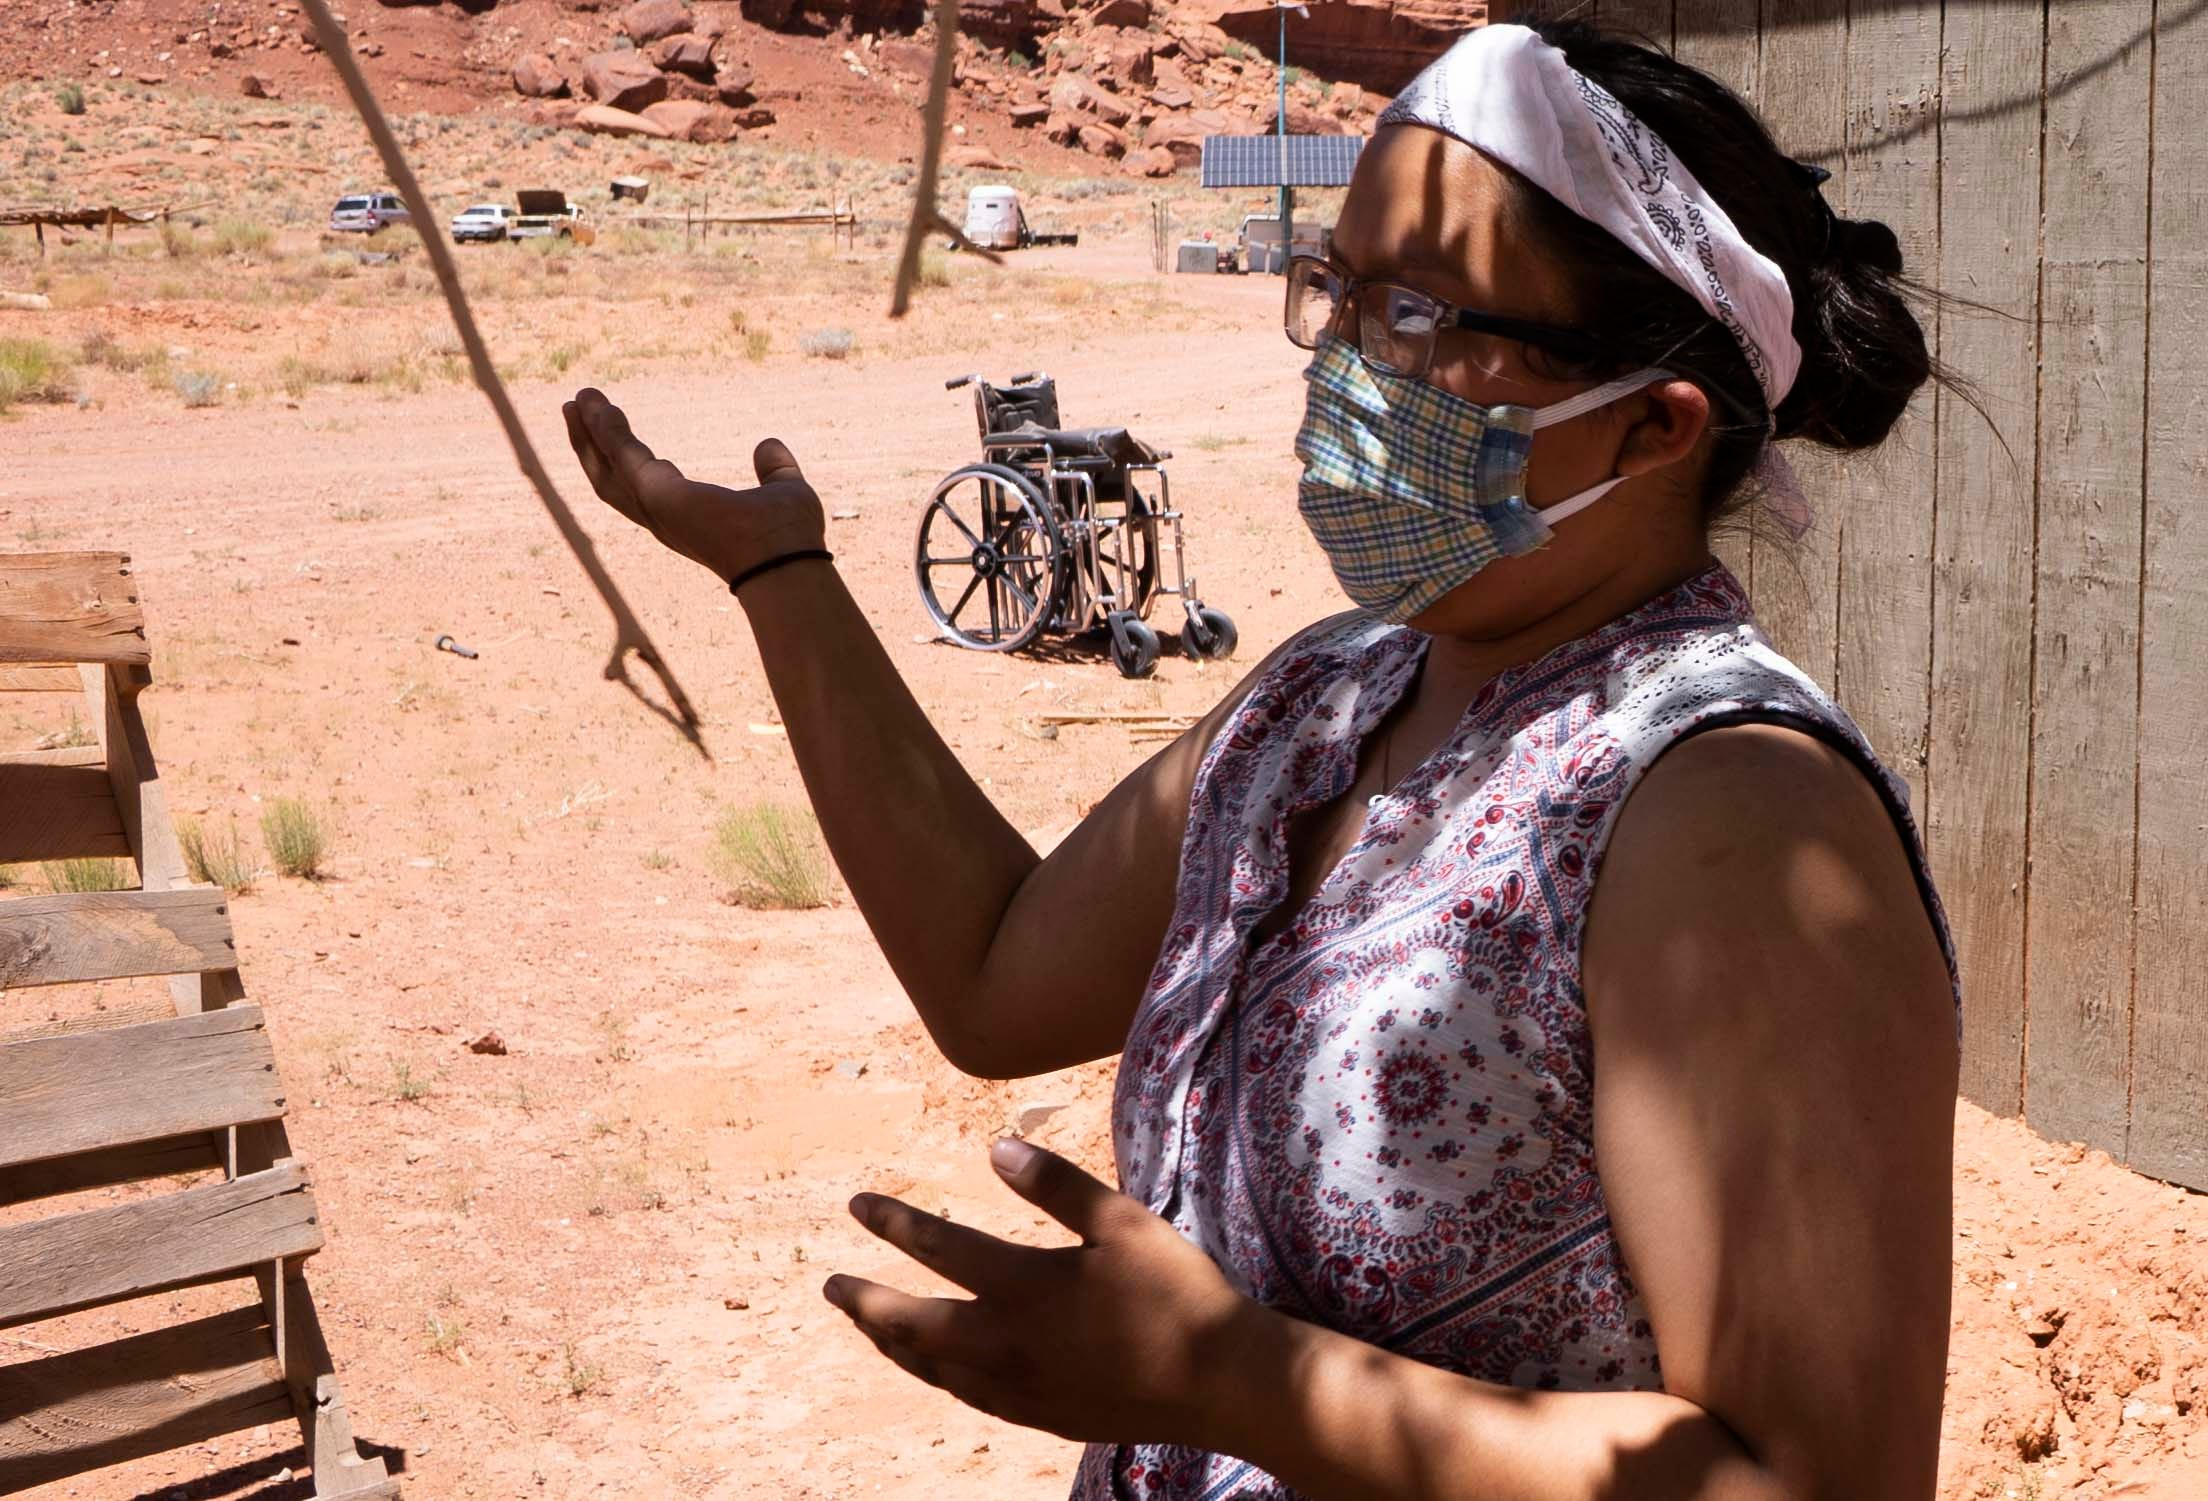 Felicia Holliday, 17, speaks about how her family gets water to their home in Monument Valley, just south of the Utah-Arizona border, on the Navajo Nation. She says she bathes her grandmother with a bucket and a washcloth. Other relatives keep the water barrels filled by making trips to a spigot to fill up.